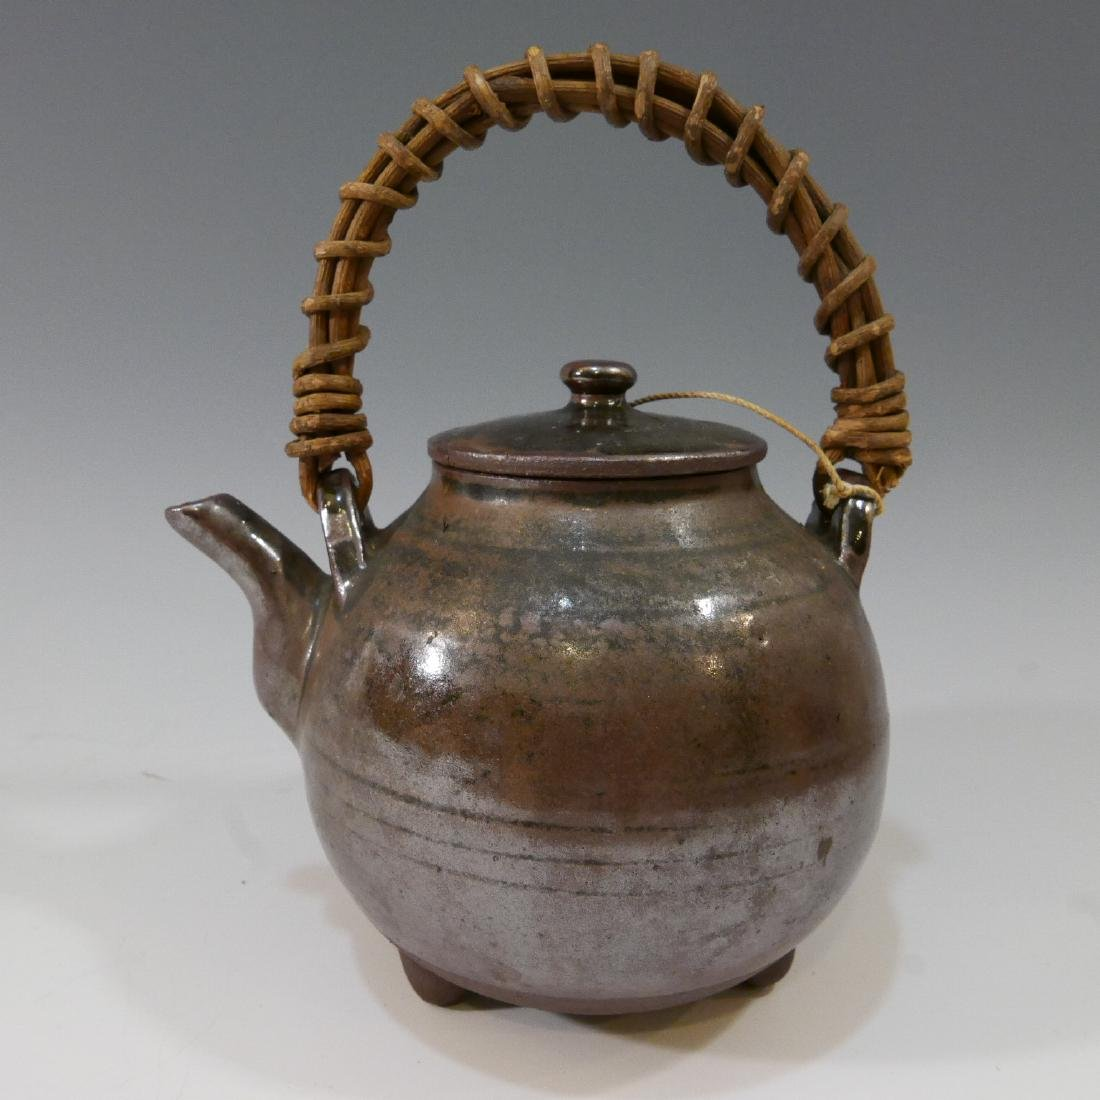 ANTIQUE CHINESE TEAPOT - MARKED